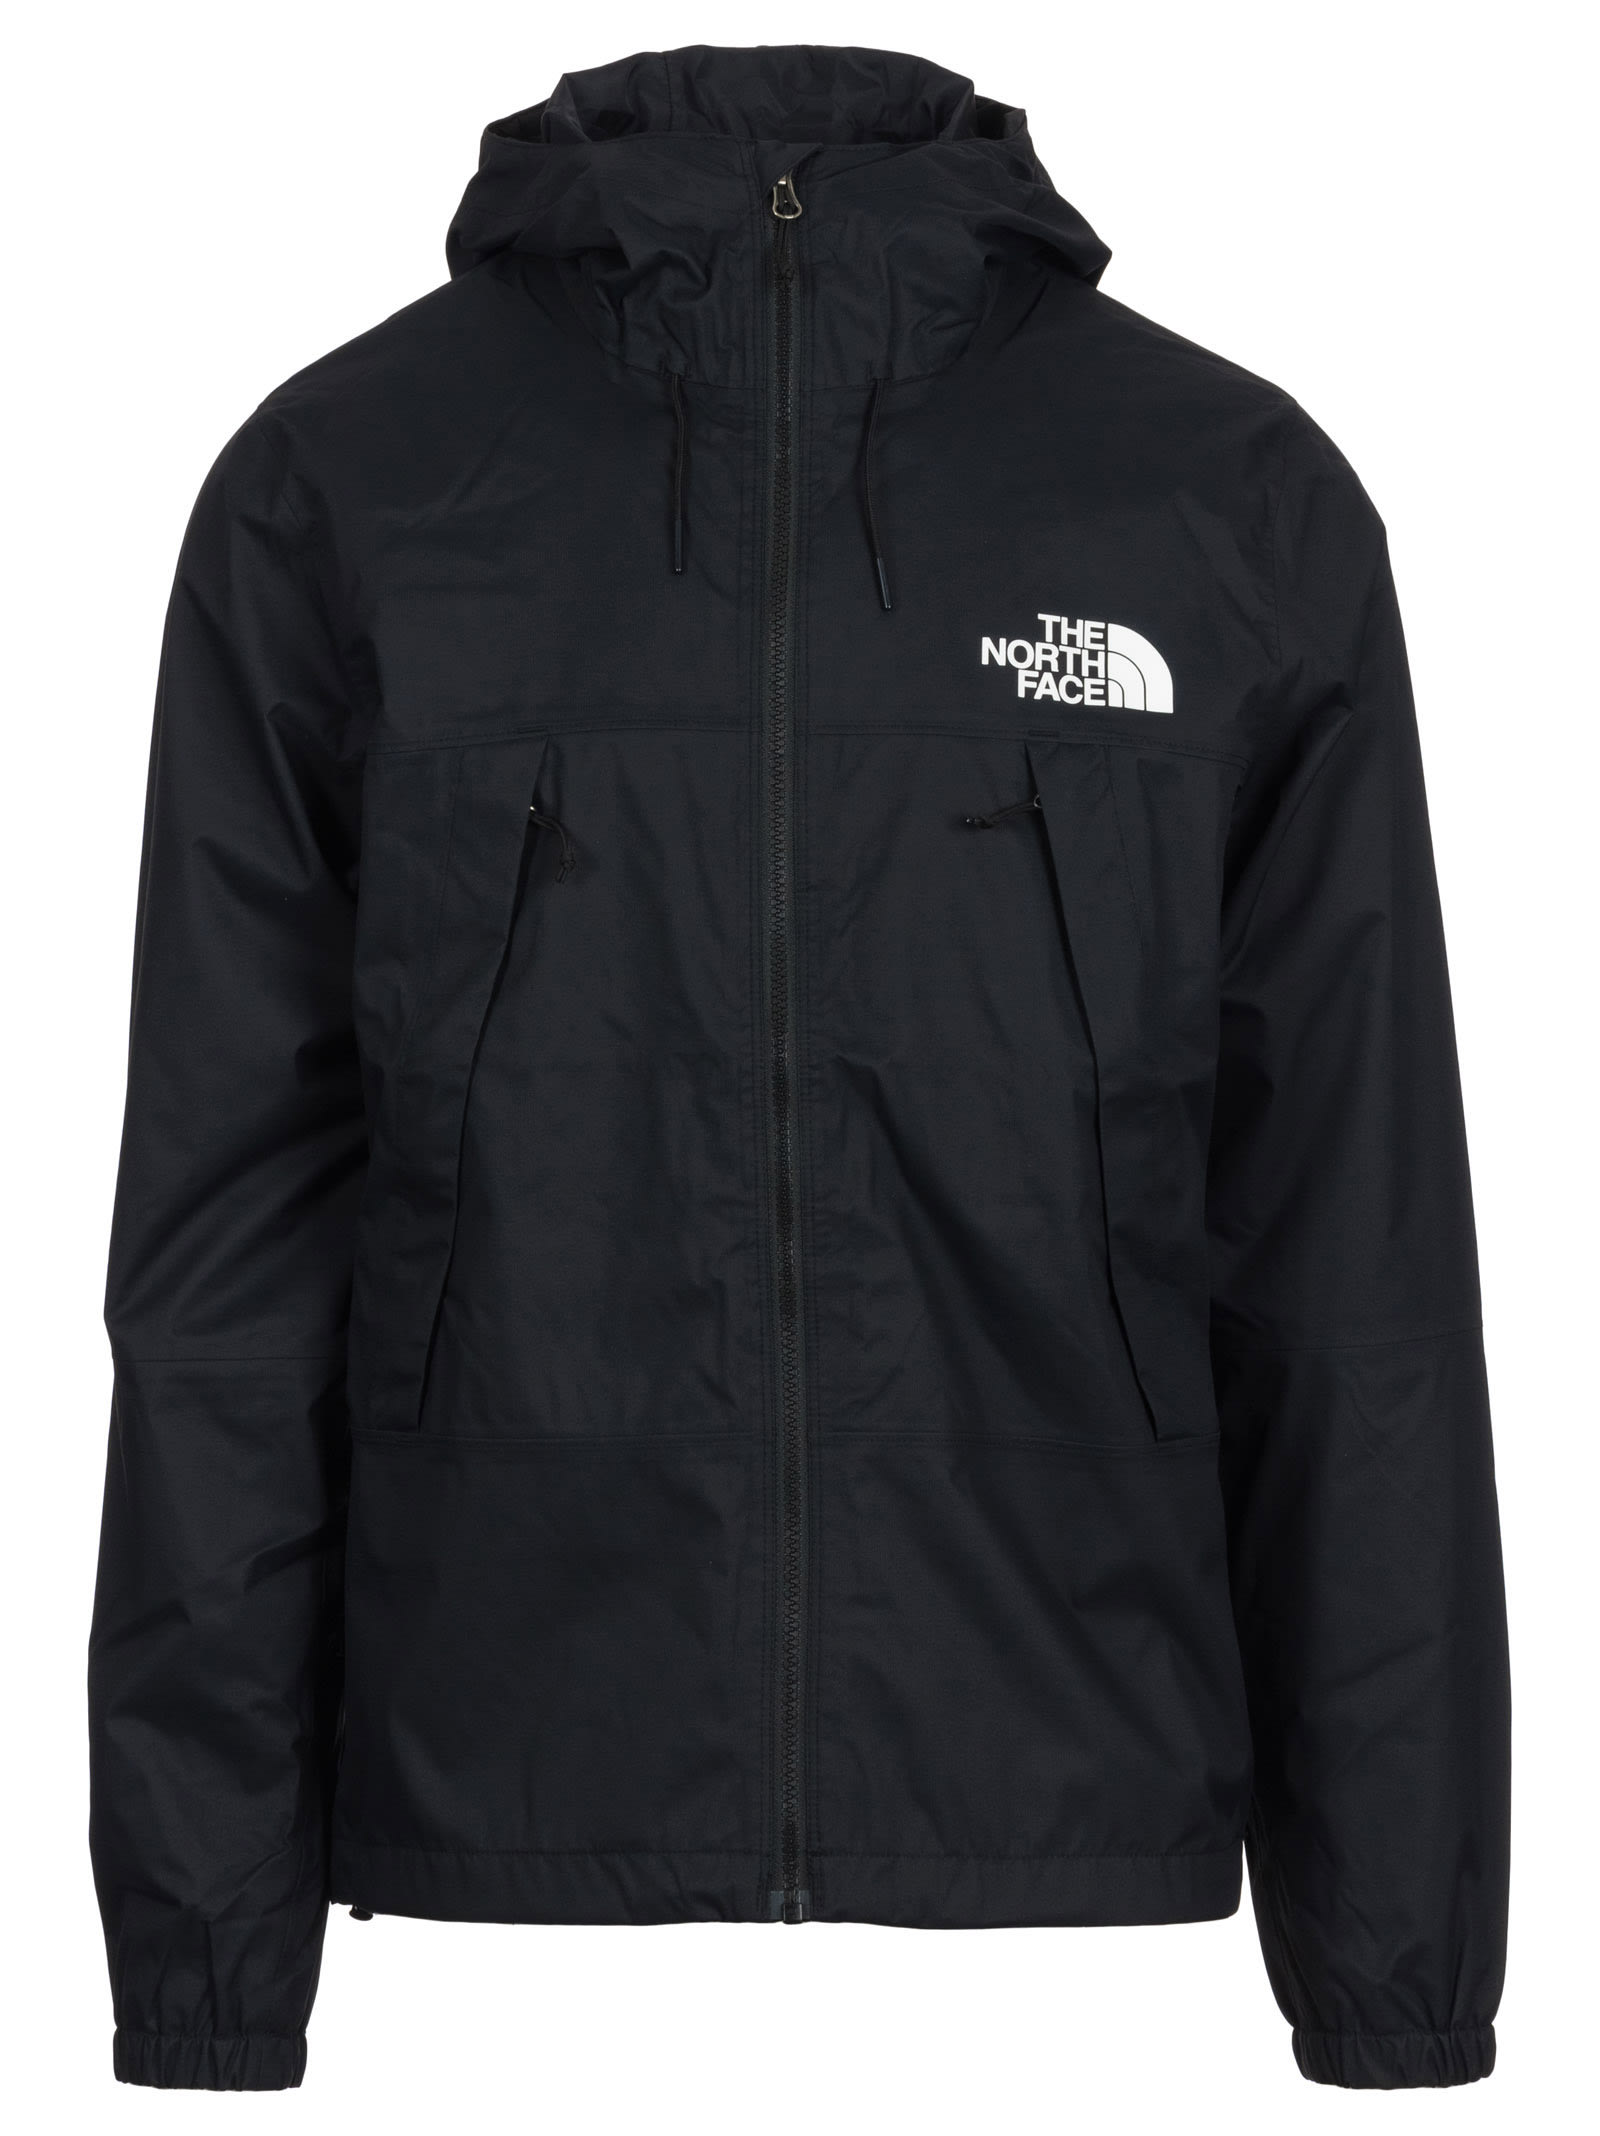 b5526332c the north face bomber jackets coats & jackets for men - Buy best ...